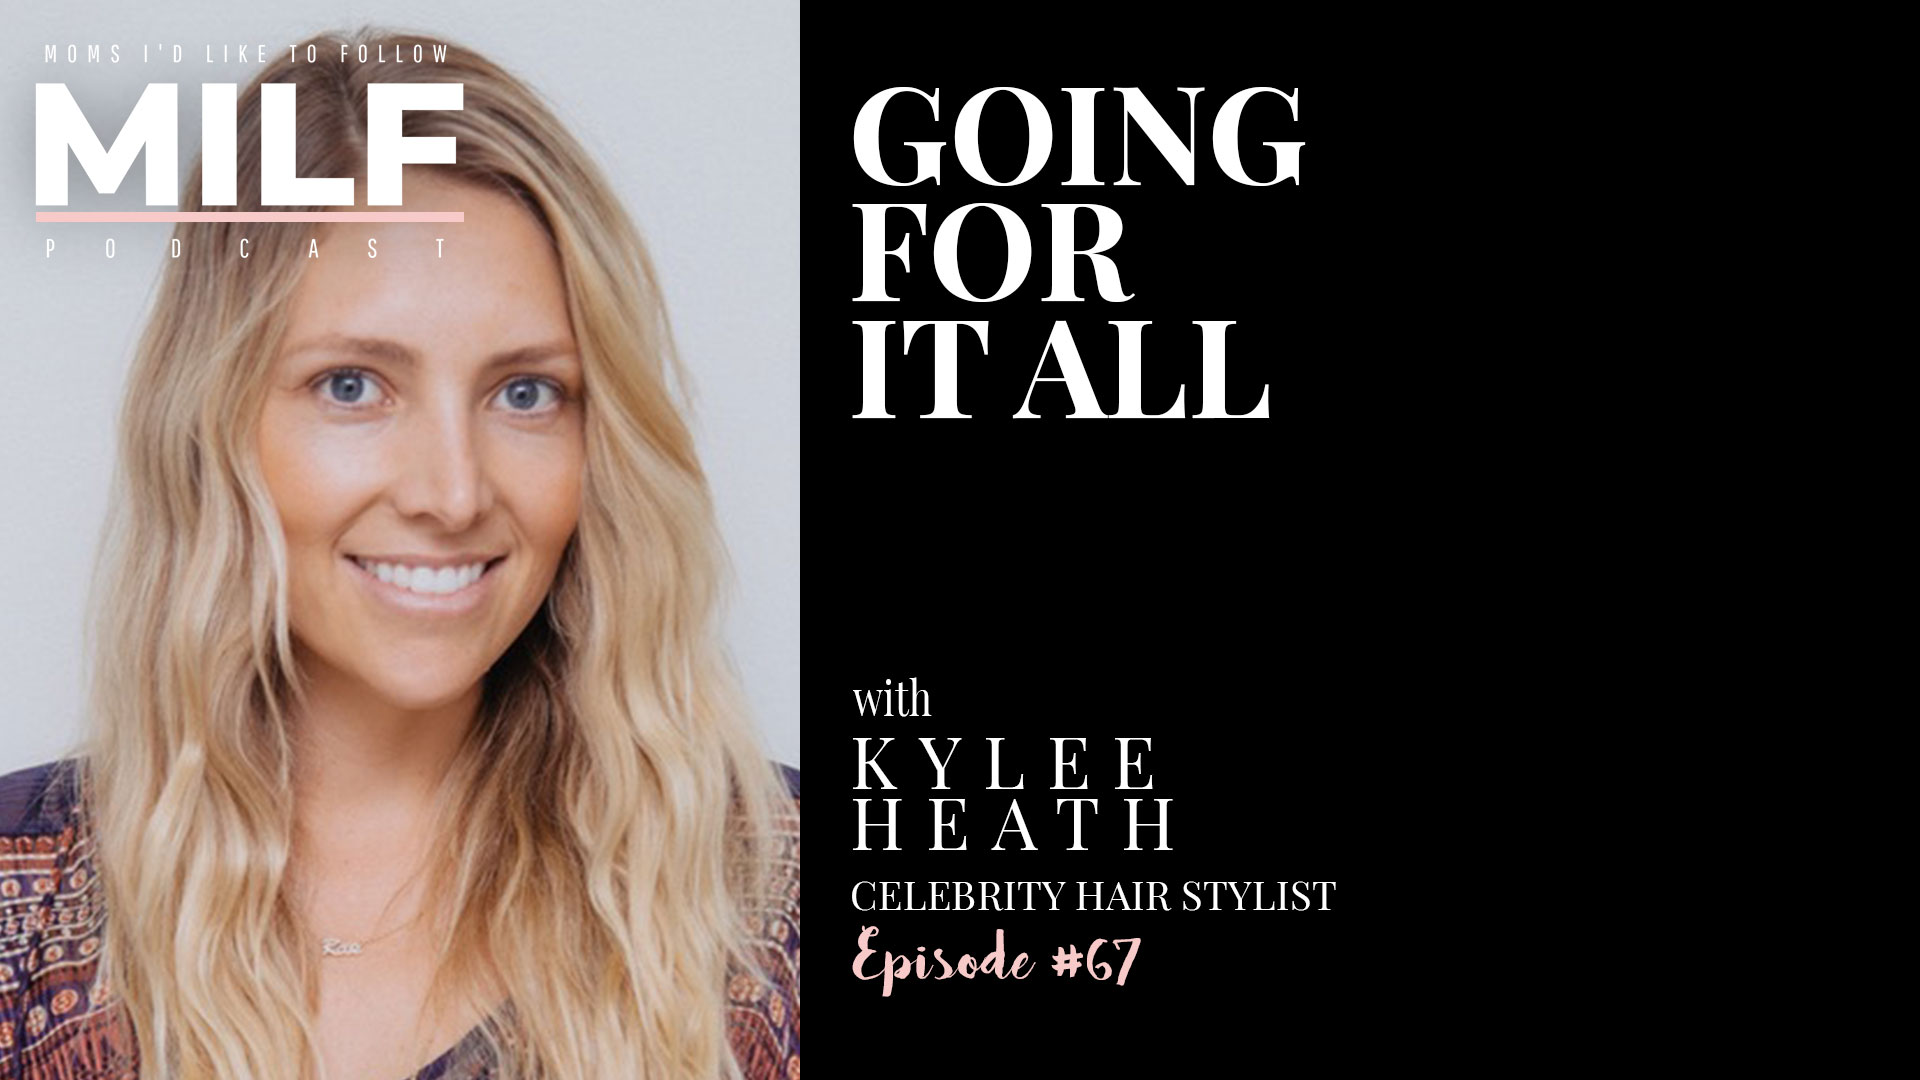 Going For It All With Kylee Heath Episode 67 Milf Podcast